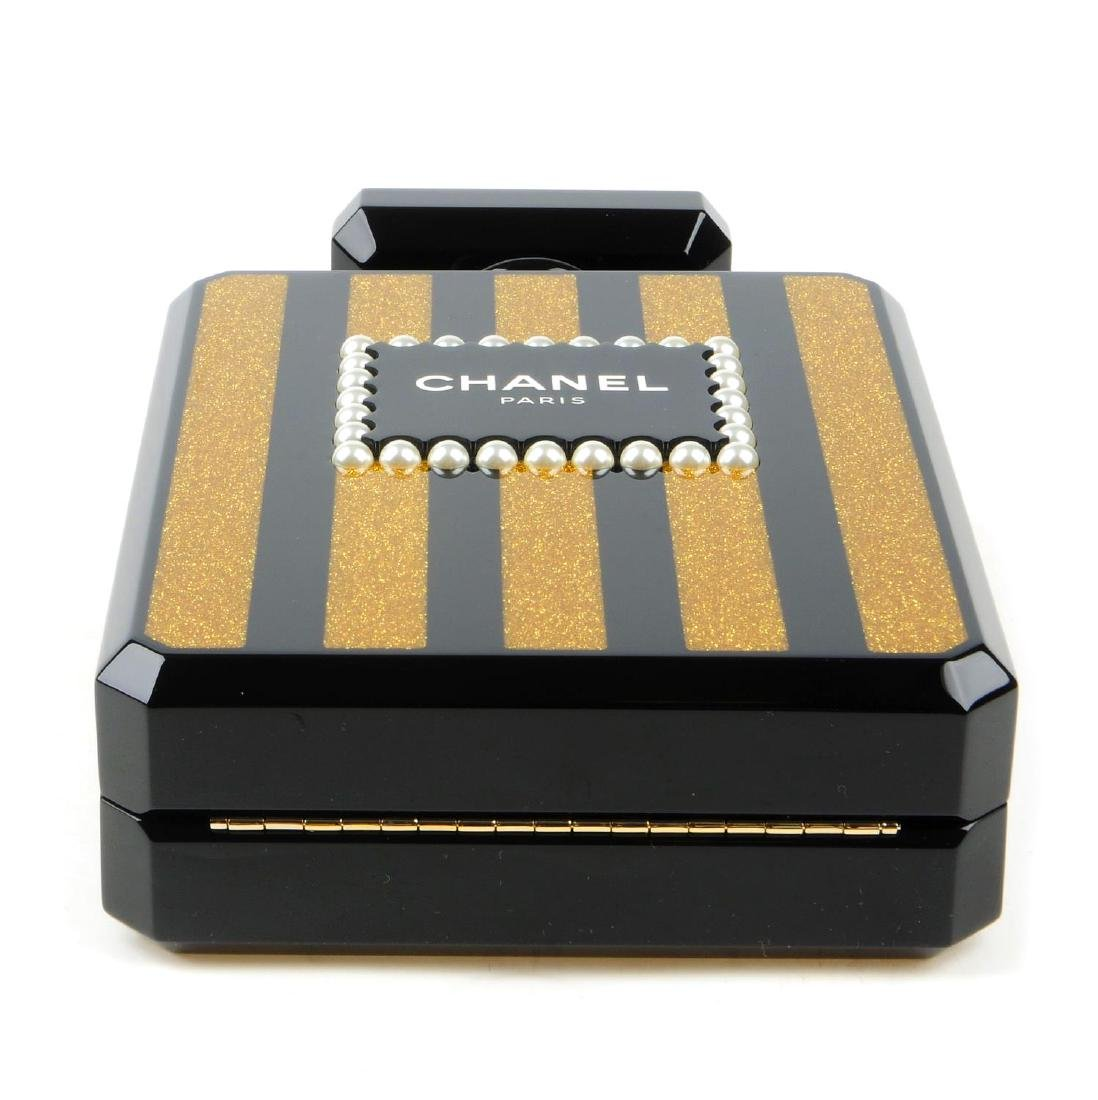 CHANEL - a Perfume Bottle Minaudière handbag. From the - 5